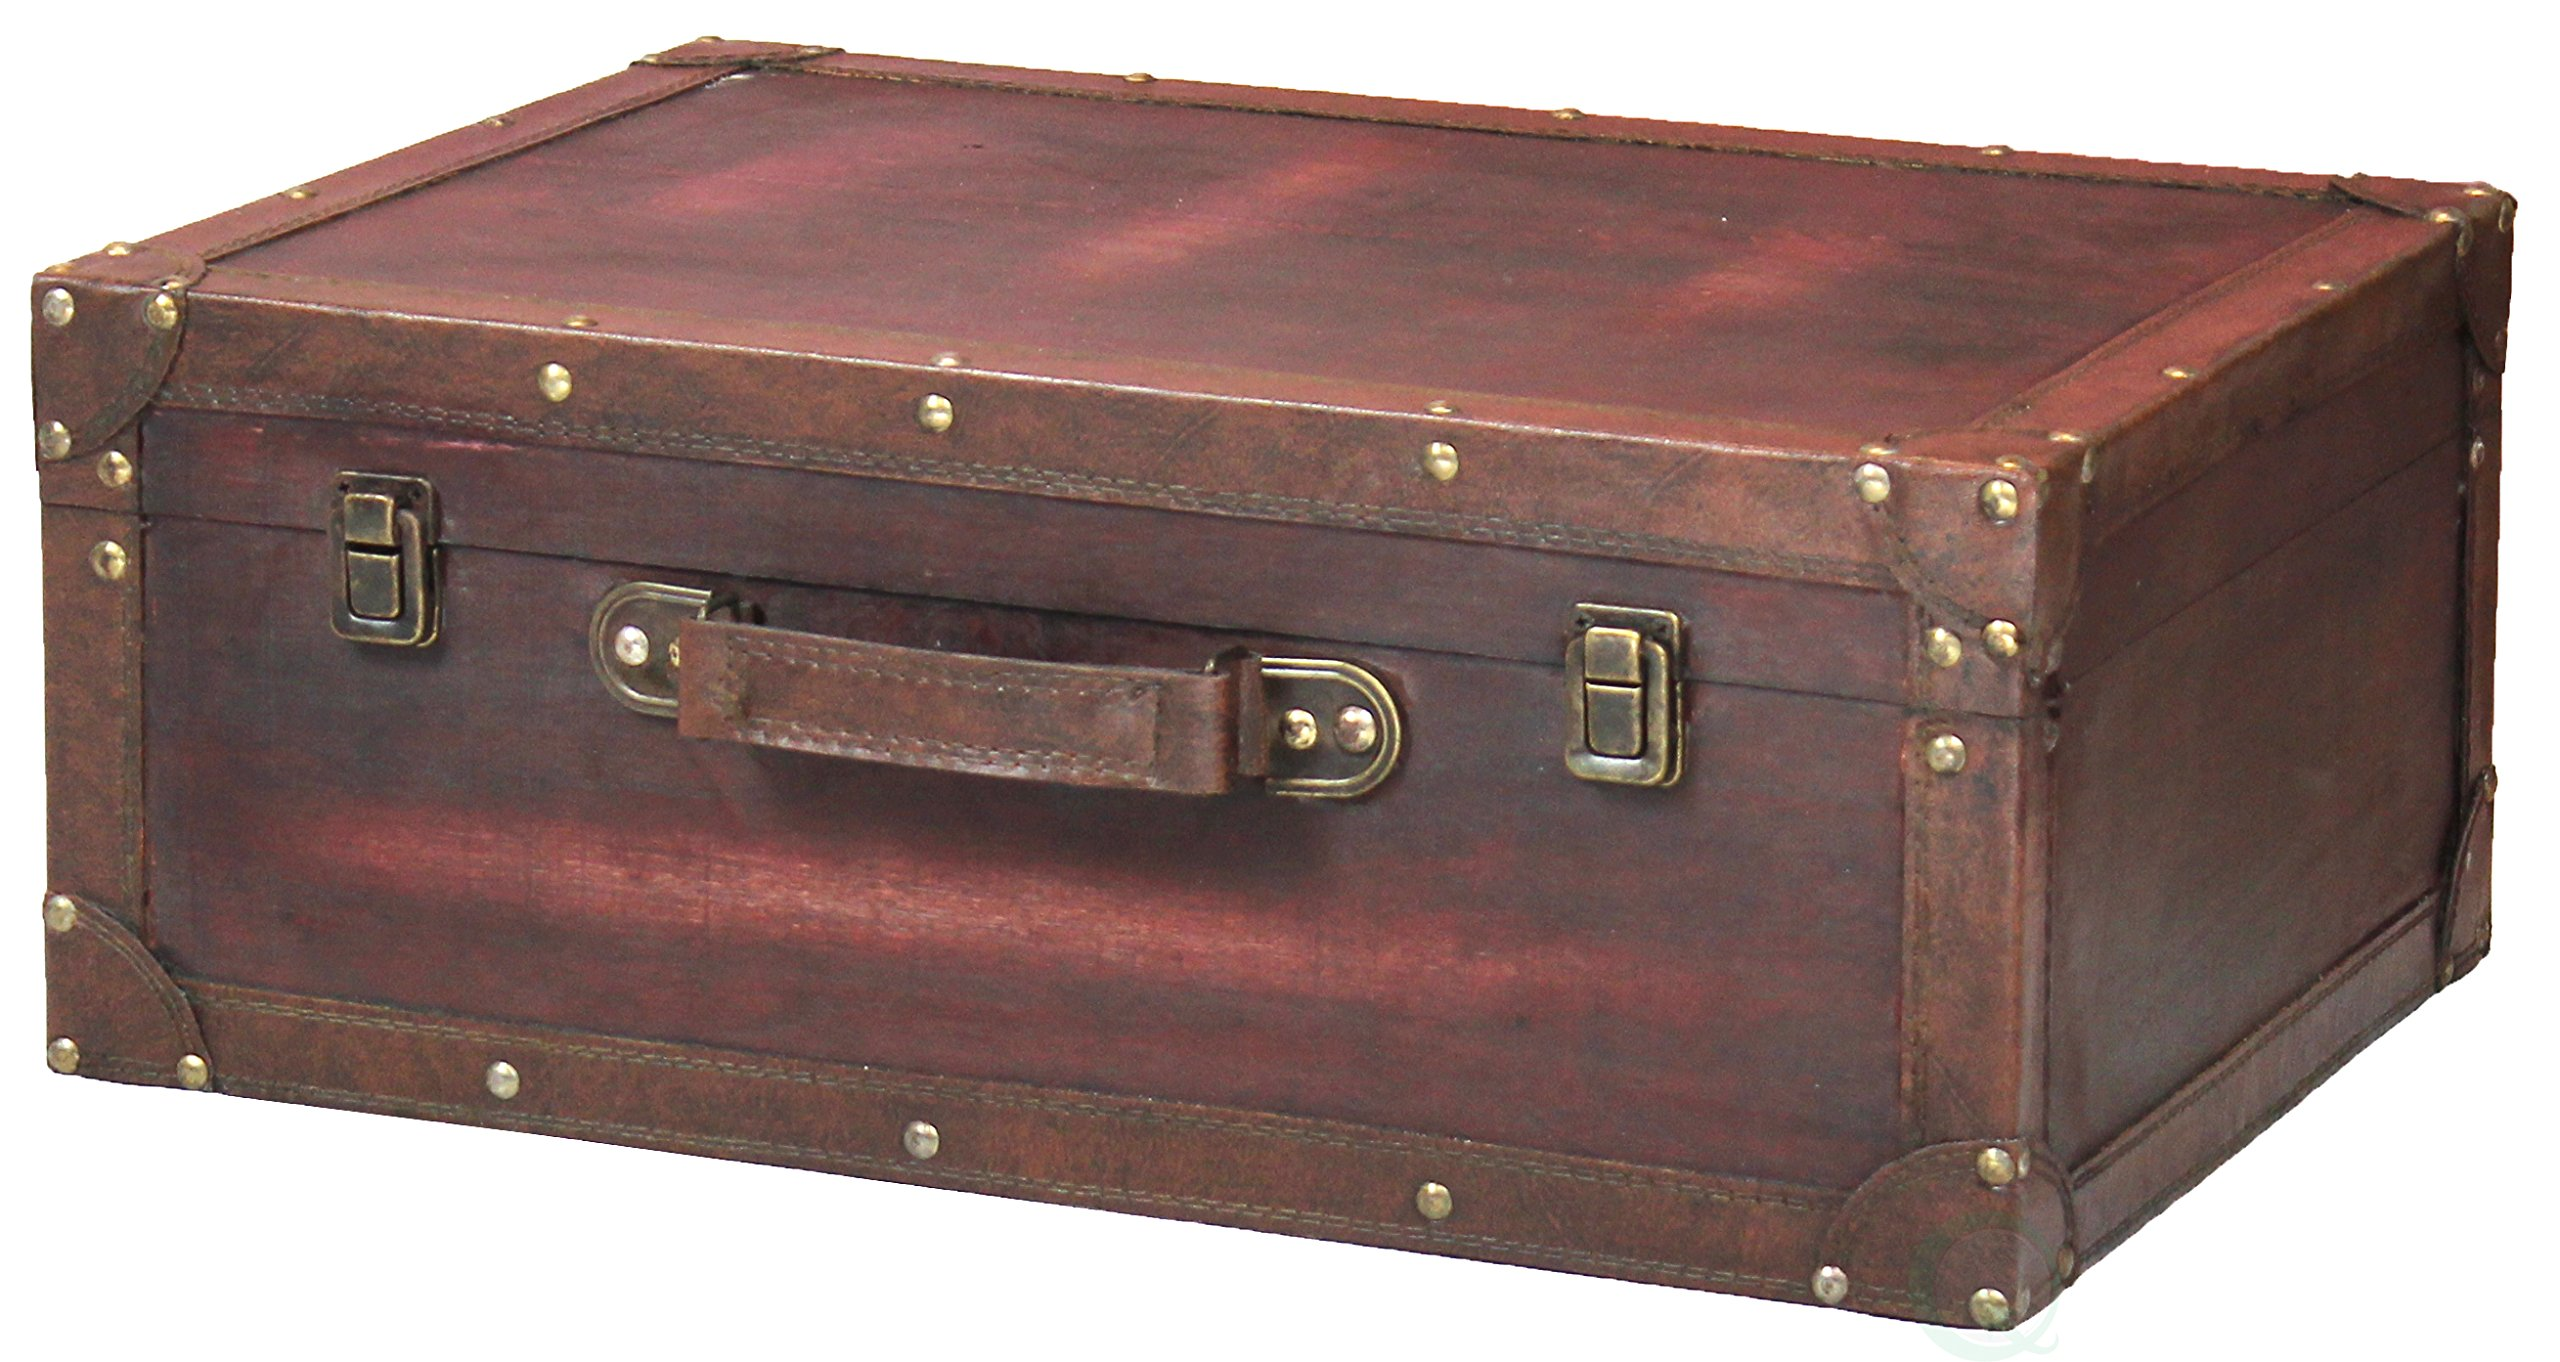 Vintage Style Brown Wooden Suitcase with Leather Trim by Vintiquewise